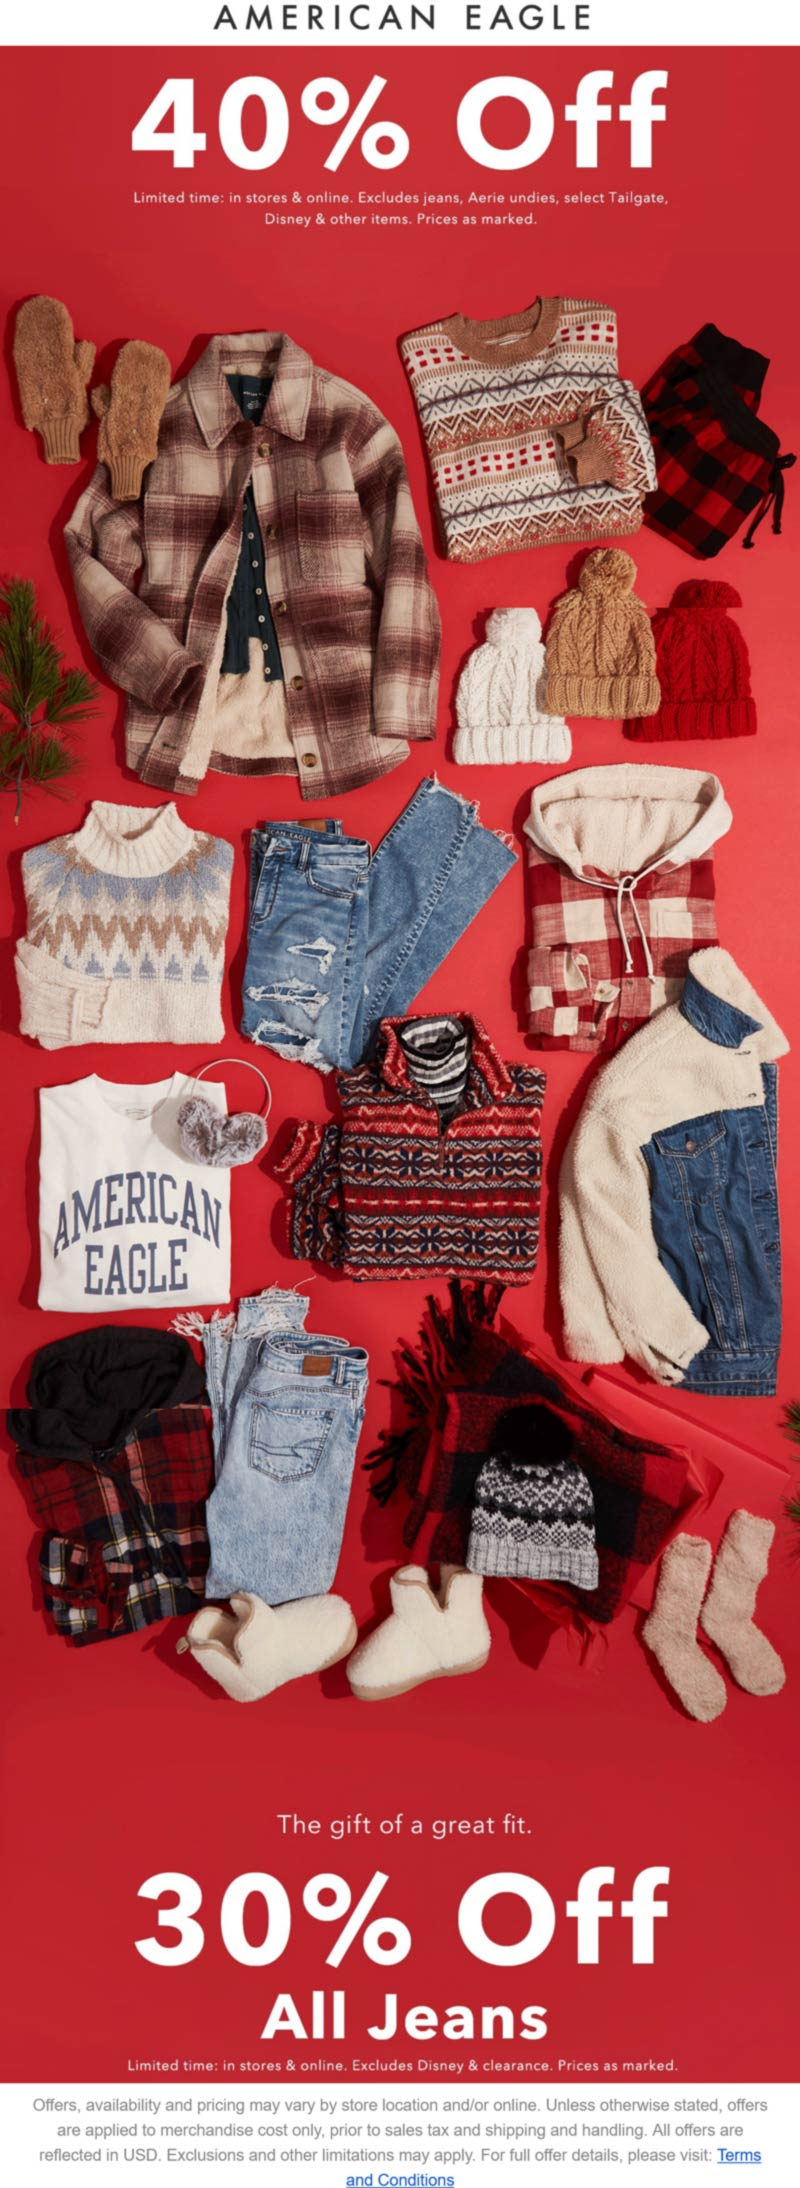 American Eagle stores Coupon  40% off at American Eagle, ditto online #americaneagle